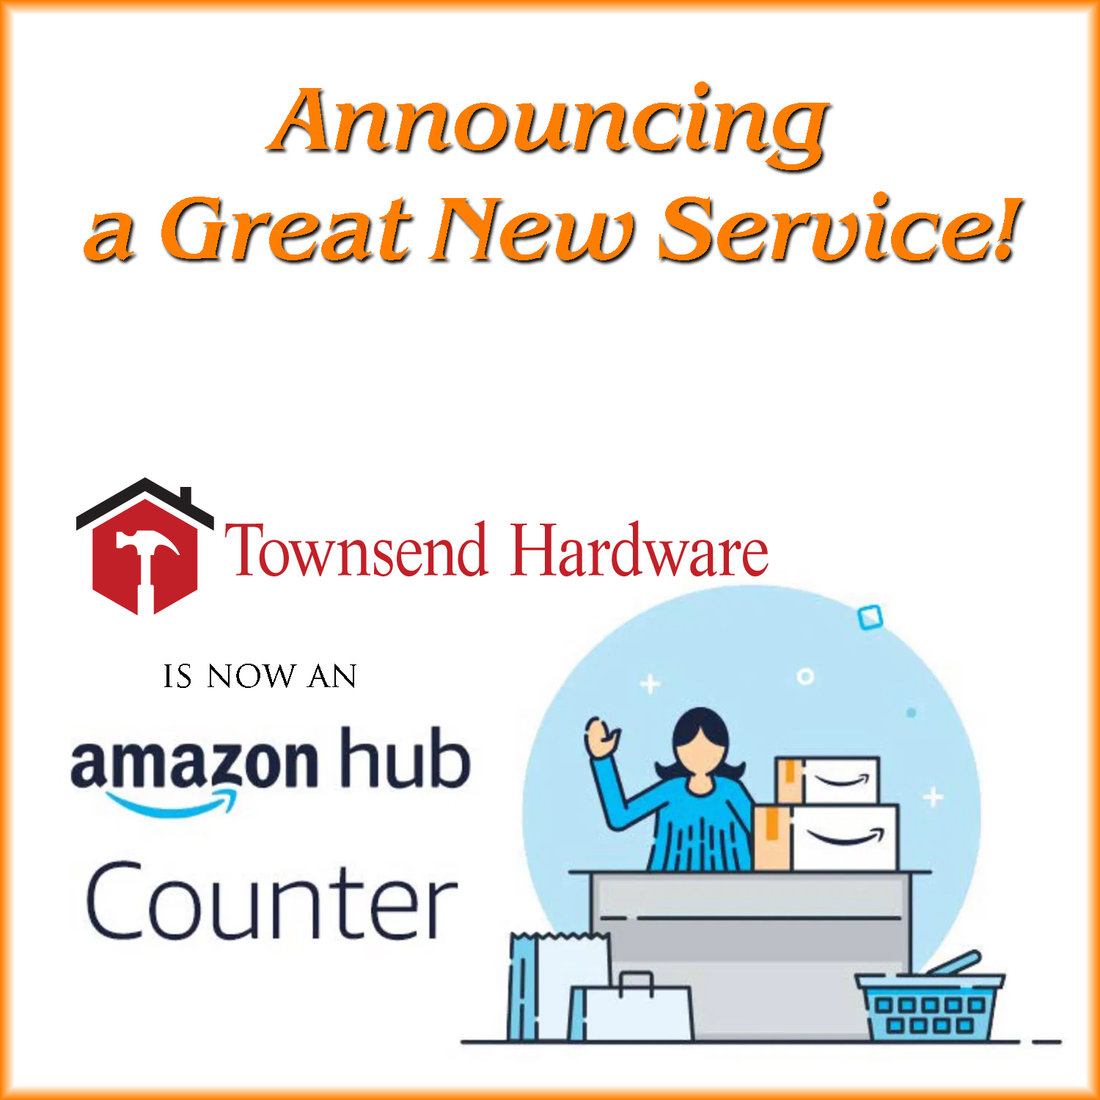 Townsend Hardware in Montana posted this on Facebook to promote its location as an Amazon Hub Counter.